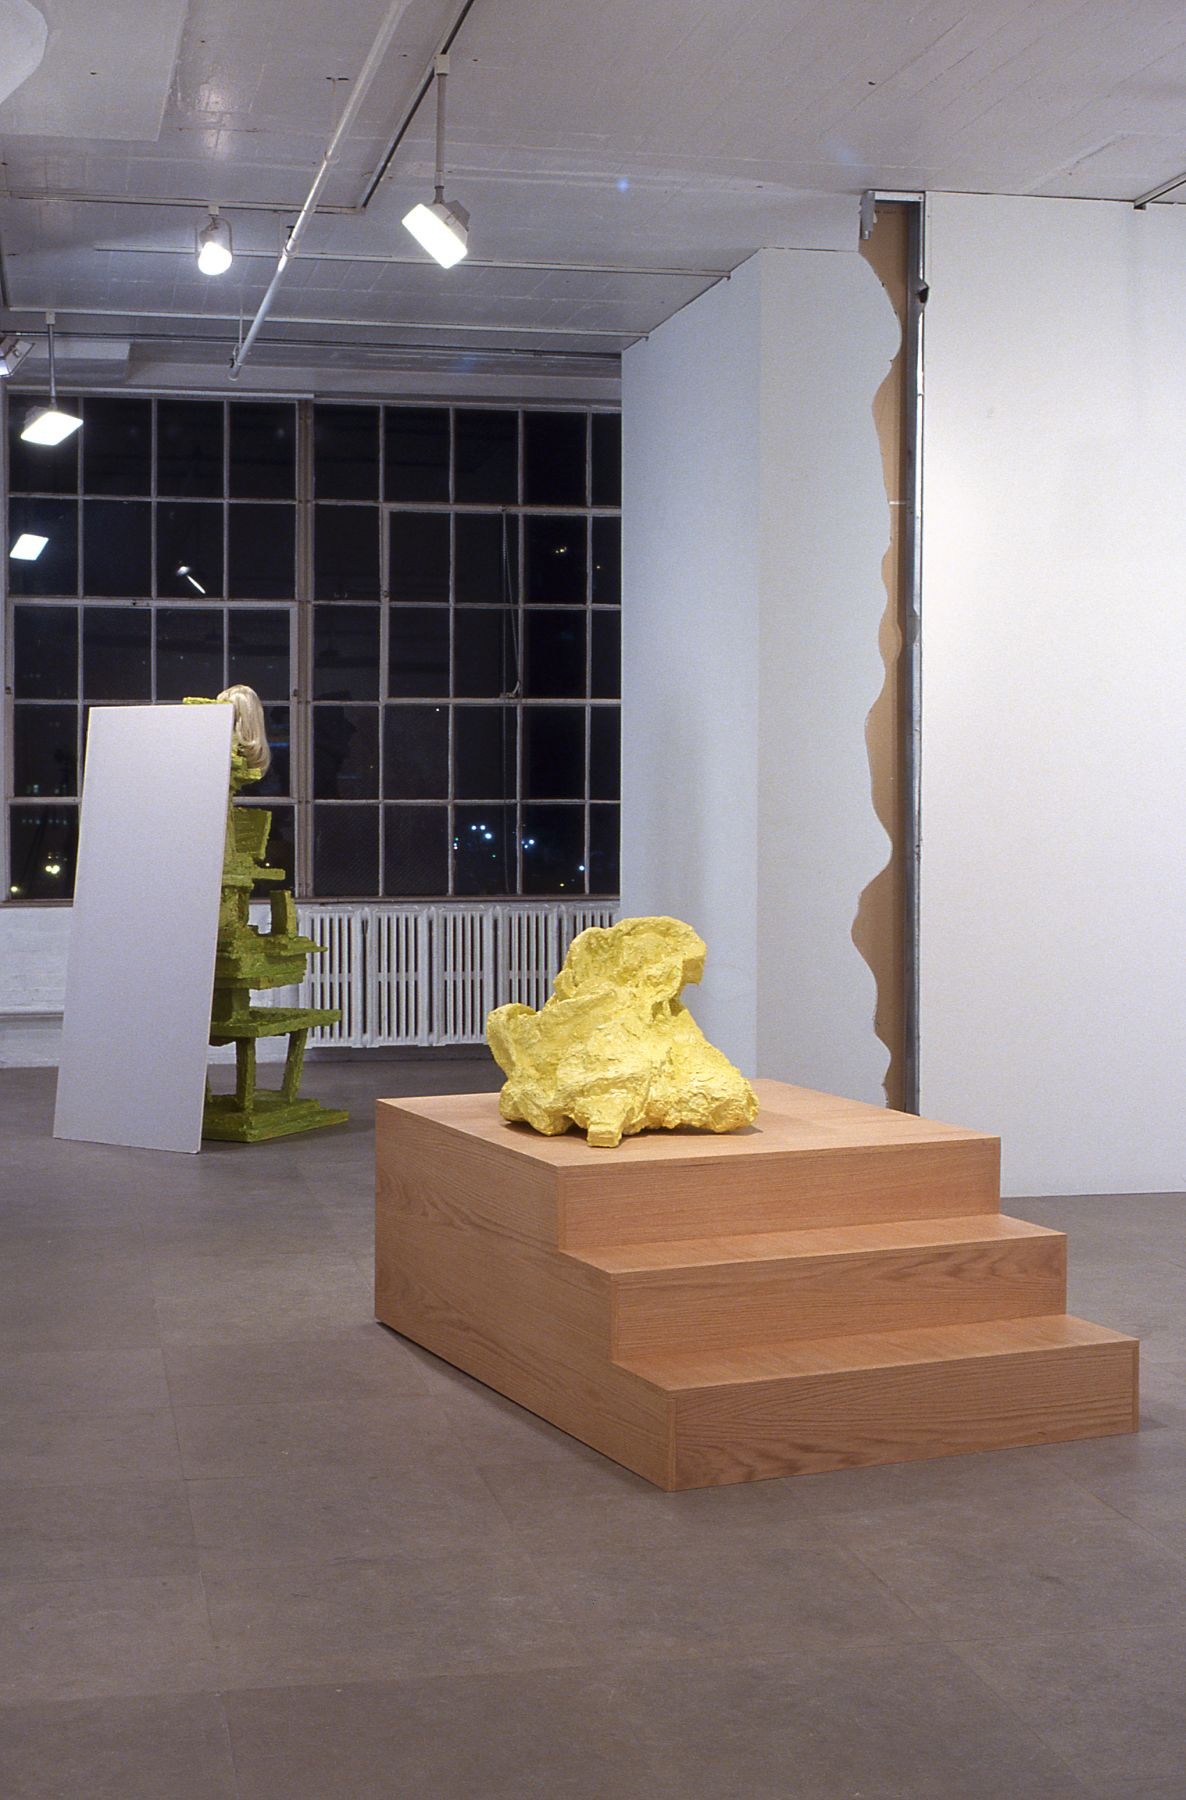 Installation view, Latka/Latkas,  Greene Naftali, New York, 2004